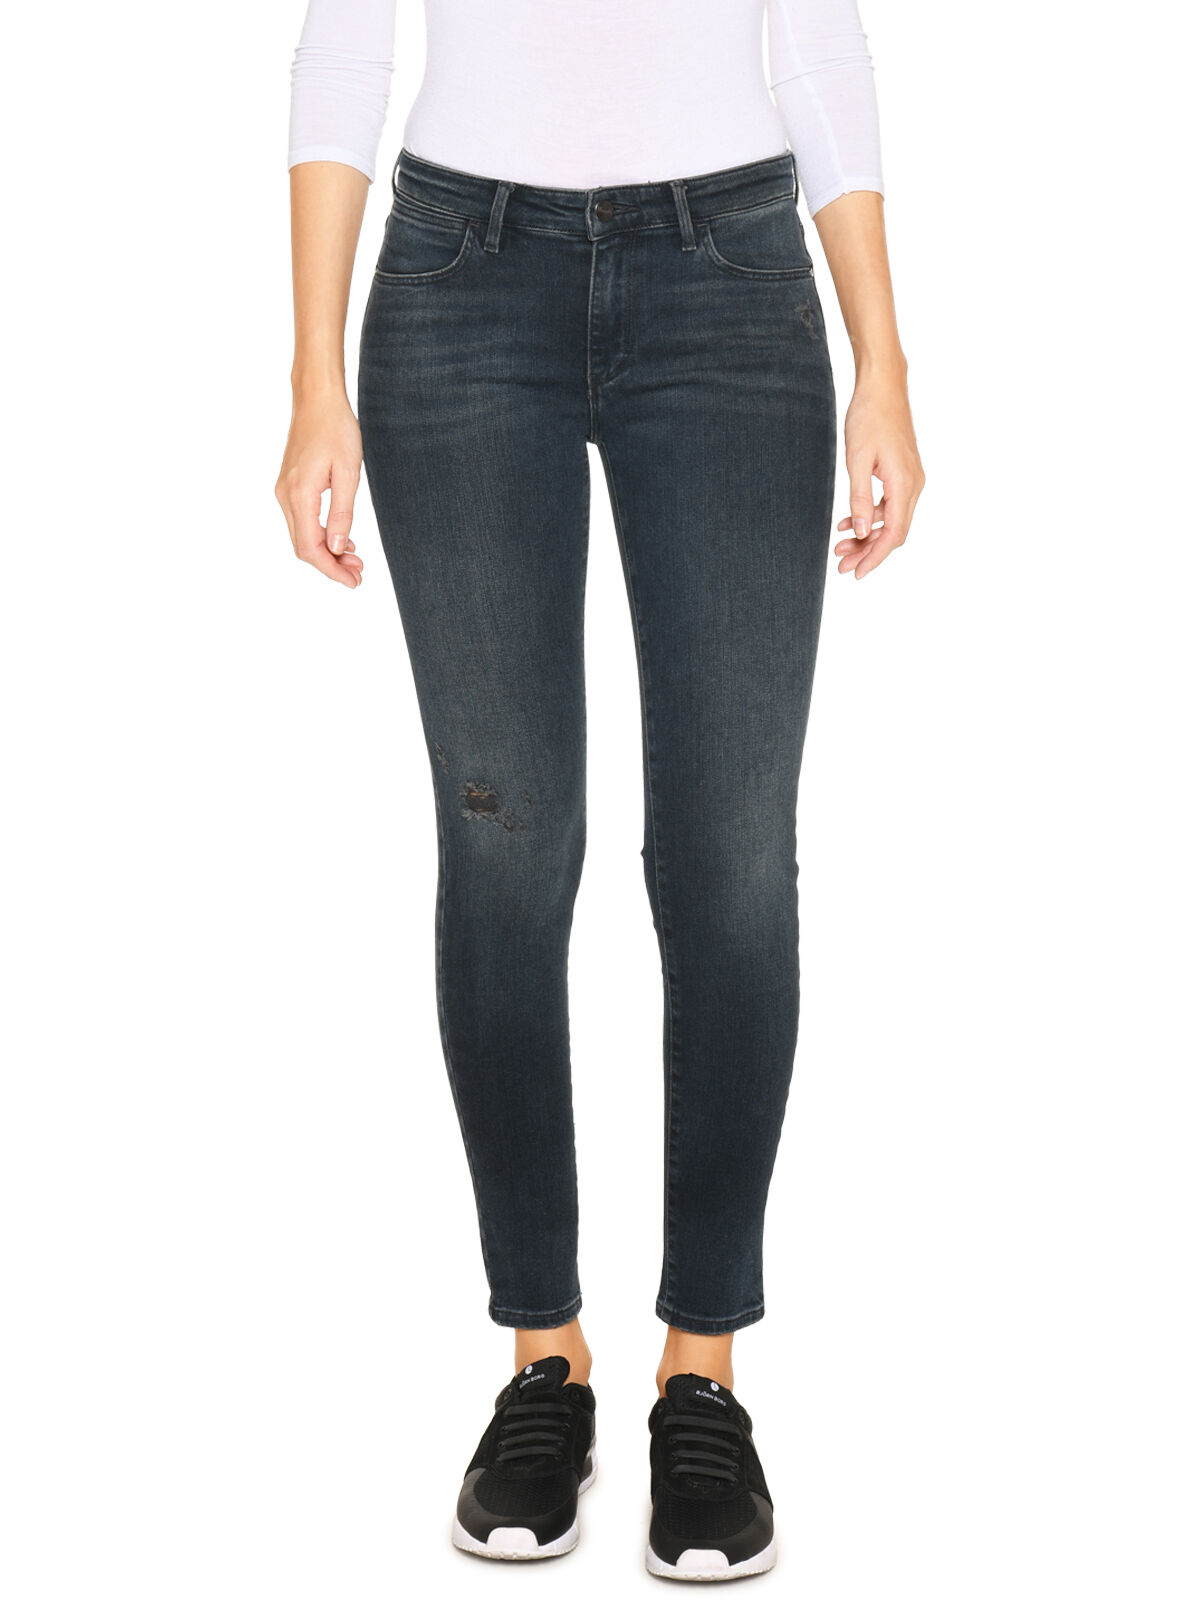 Greenfields jeans